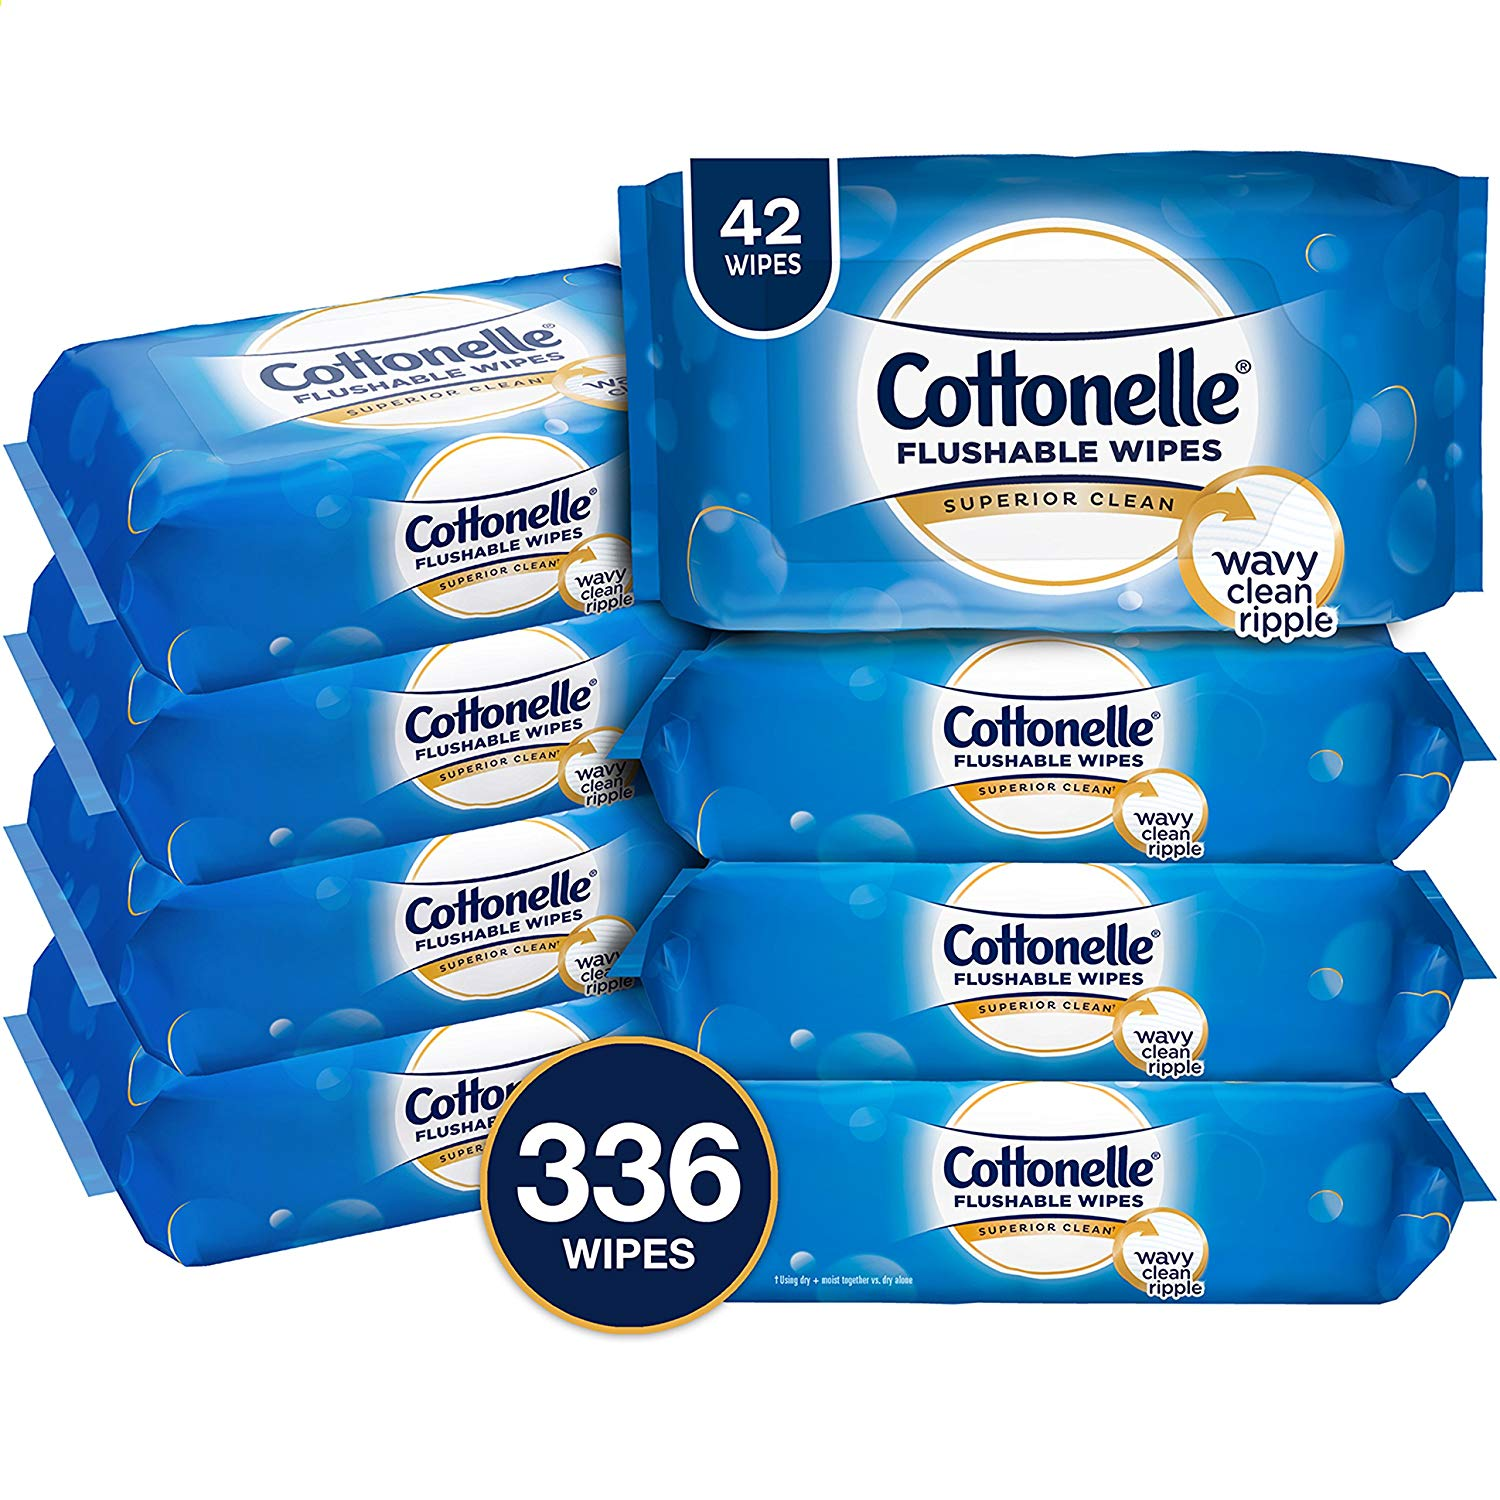 RUN! Cottonelle FreshCare Flushable Wipes 8 Pk for $8.54 (Reg. $14.99) on Amazon!